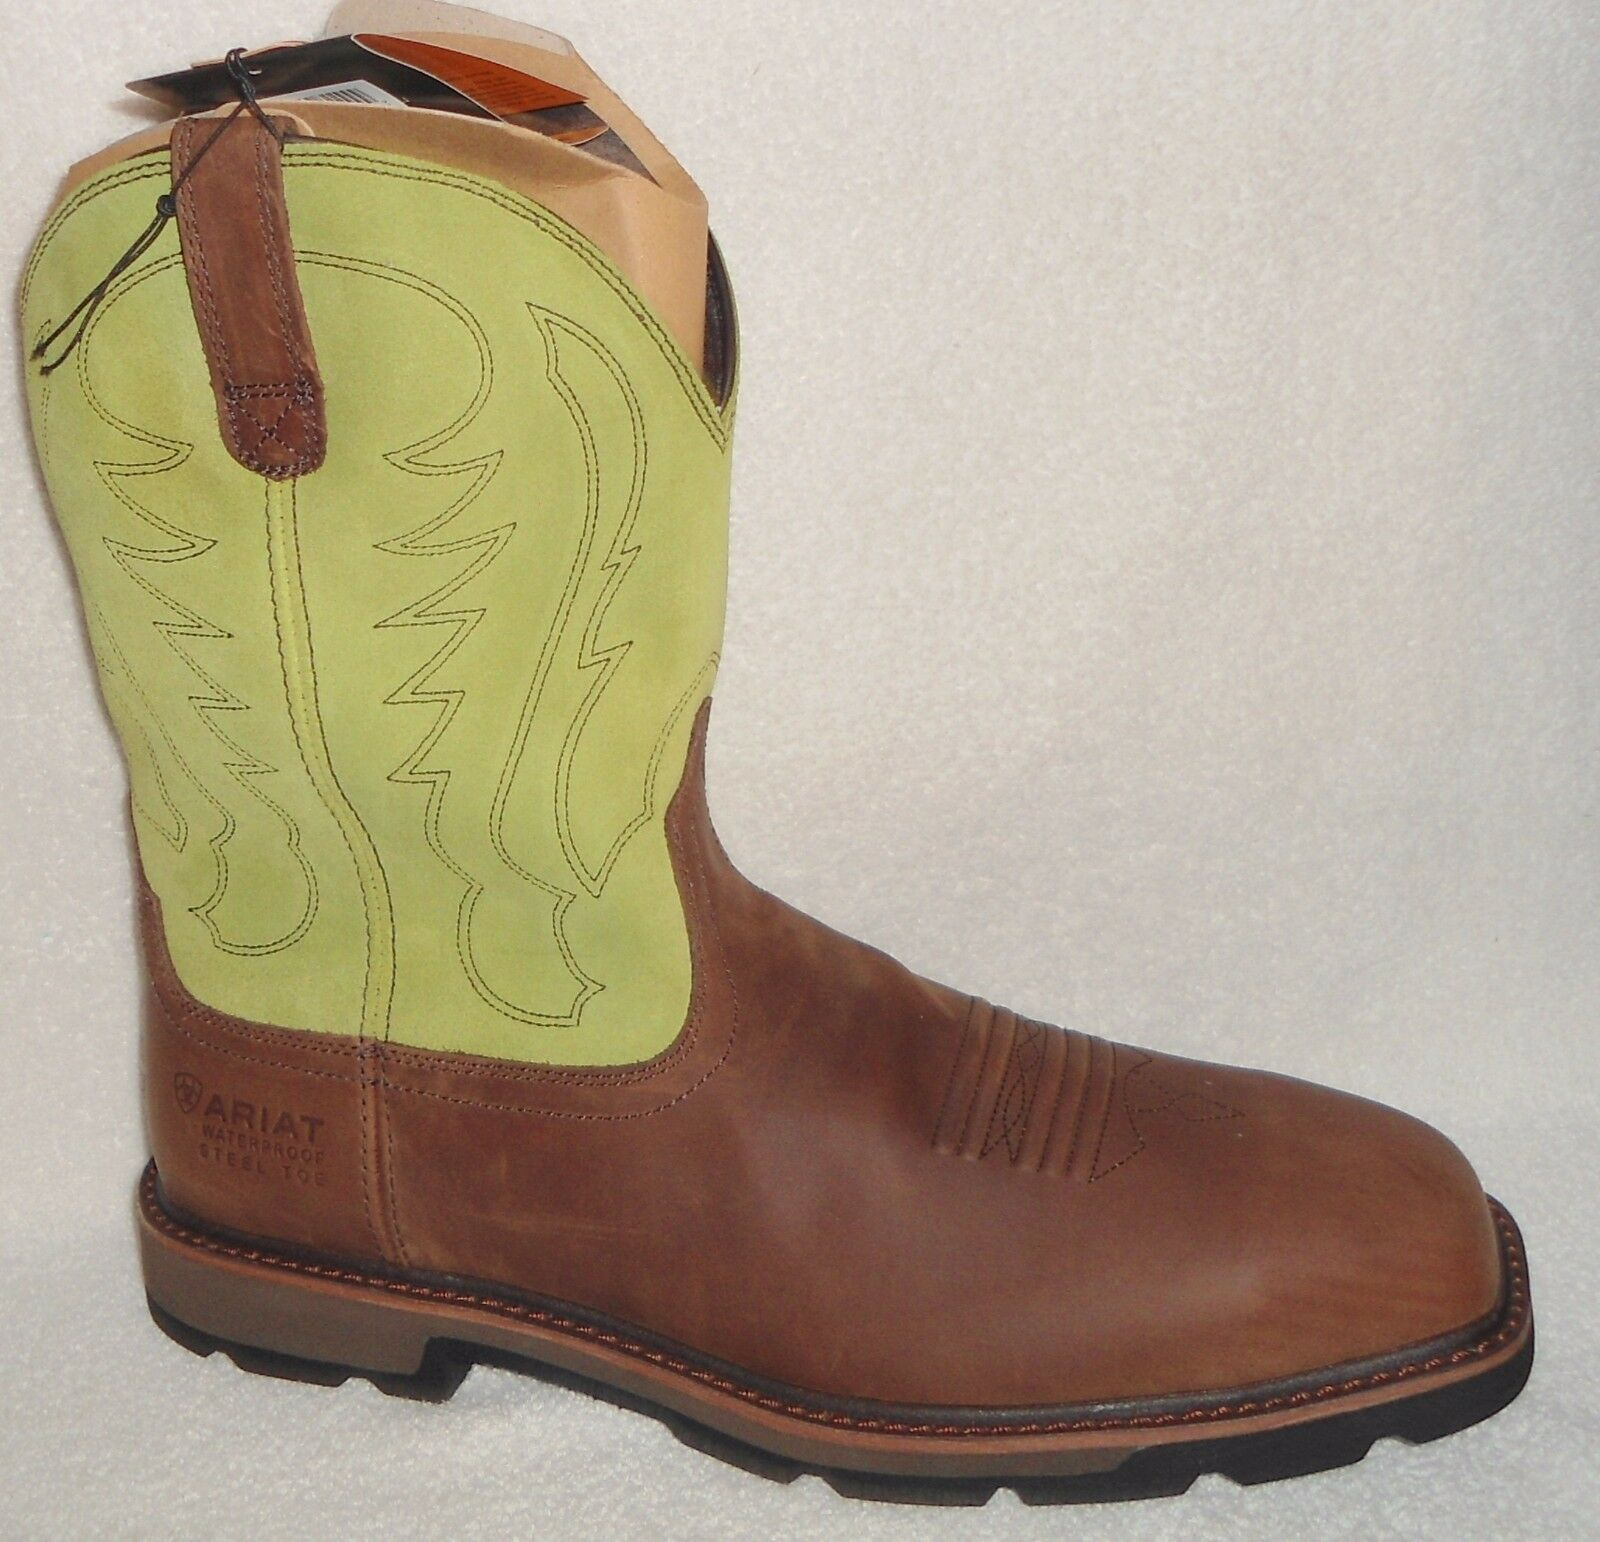 81f509a7a41 Ariat Work BOOTS Mens Groundbreaker H2o Steel Toe 14 D Brown 10015195